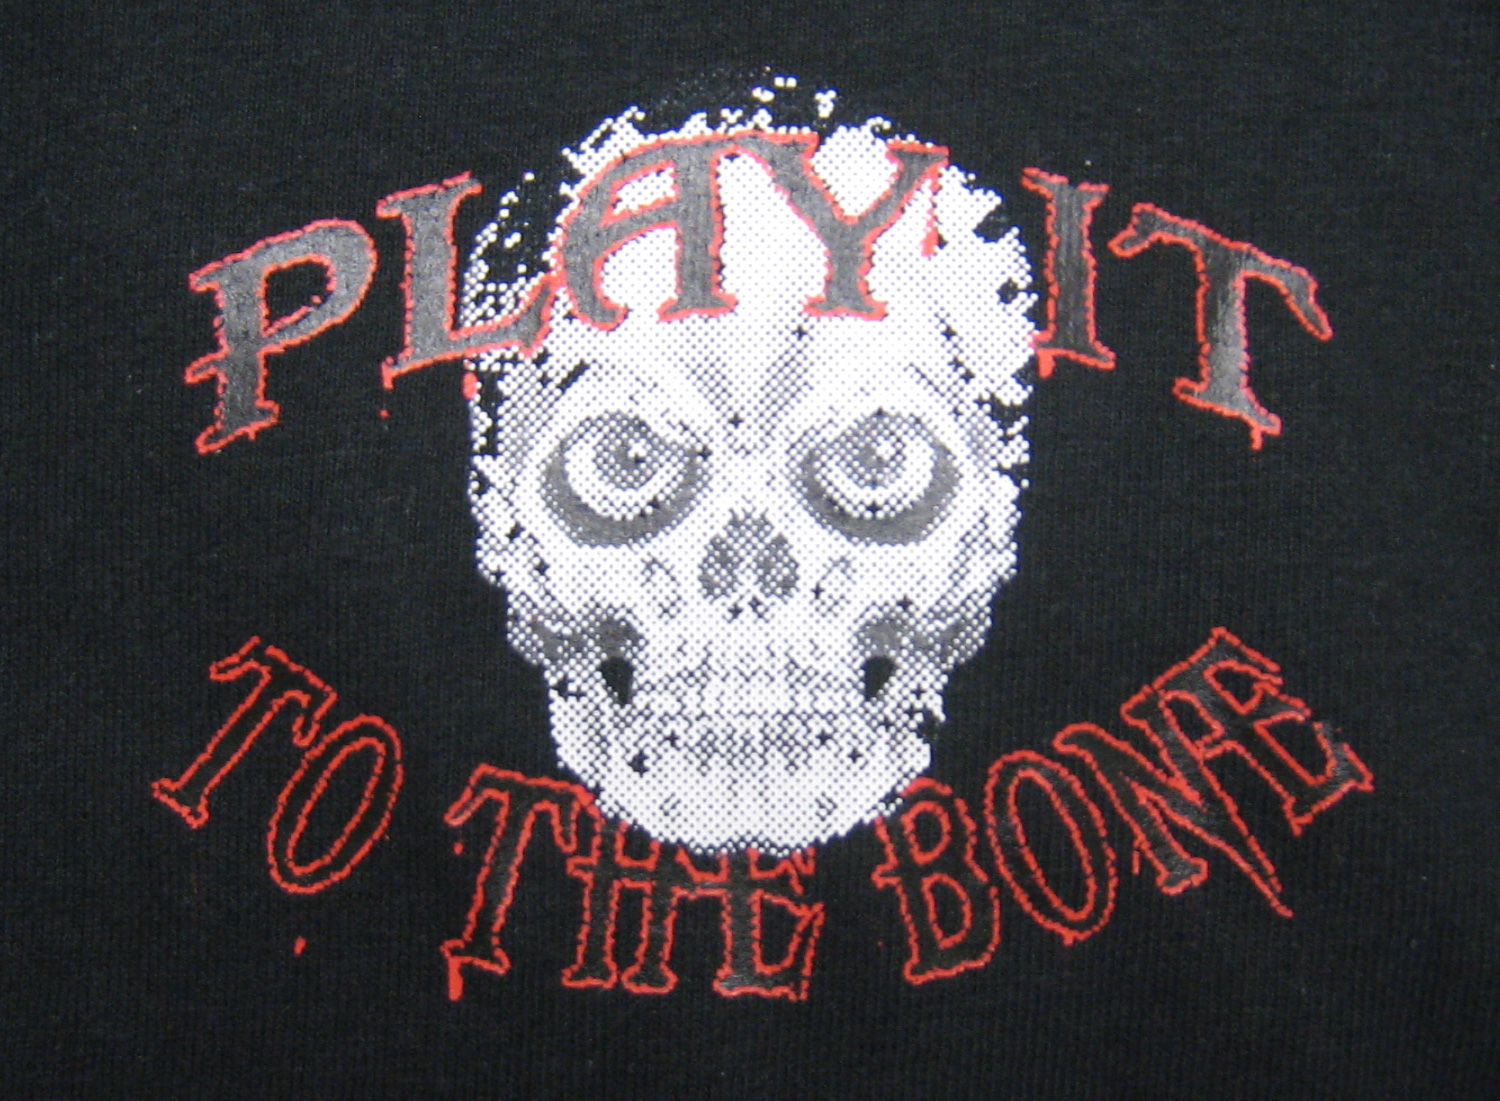 Play It To The Bone logo on shirt by Code Four Athletics